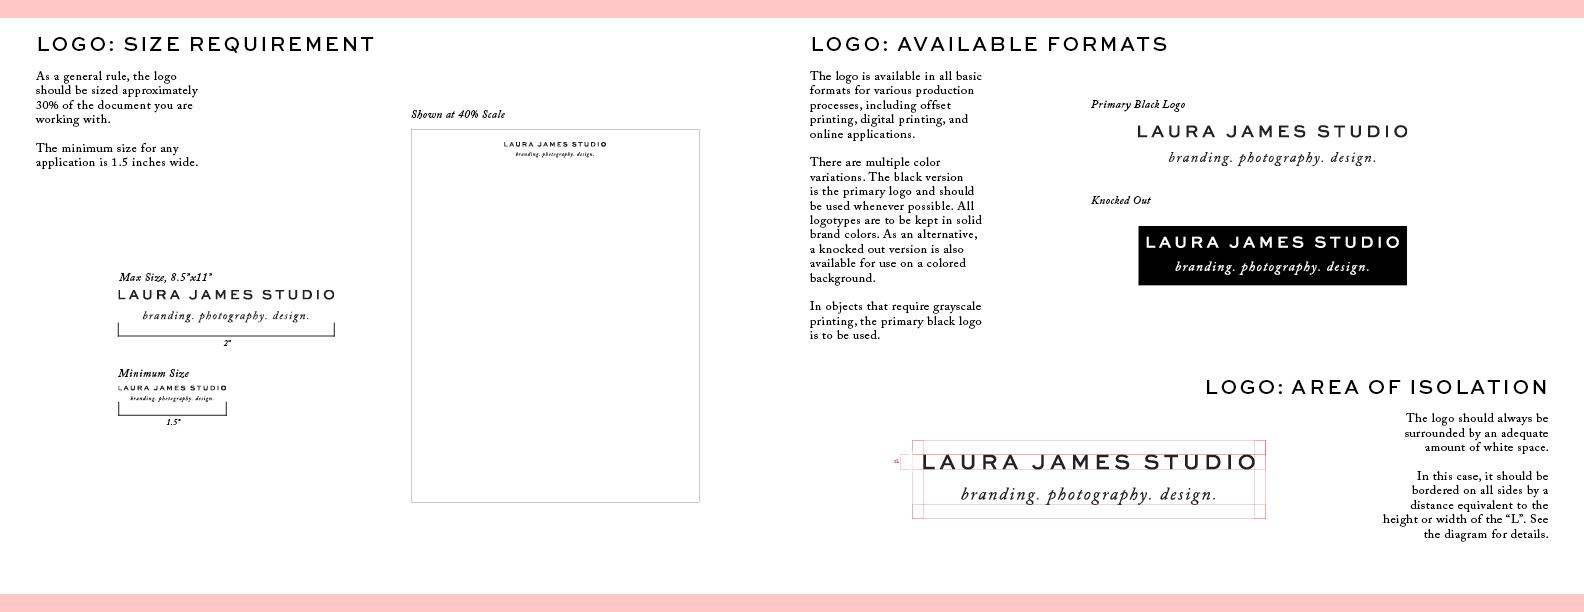 Laura James Studio Brand guide - image 6 - student project